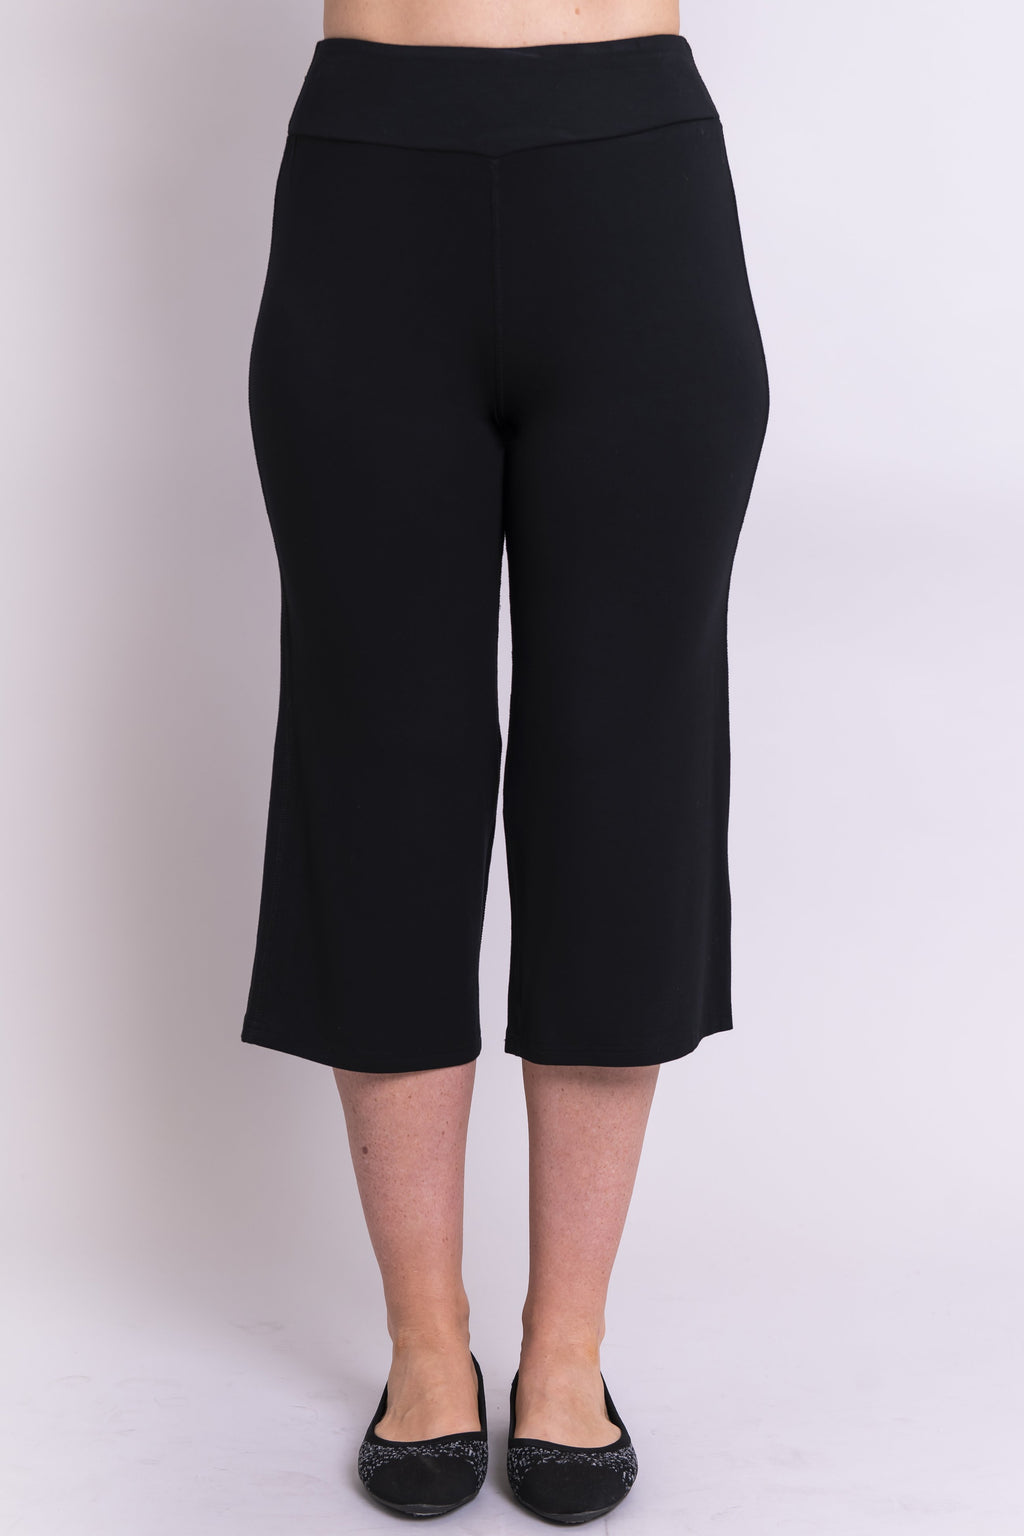 Yoga Capri, Black - Blue Sky Clothing Co